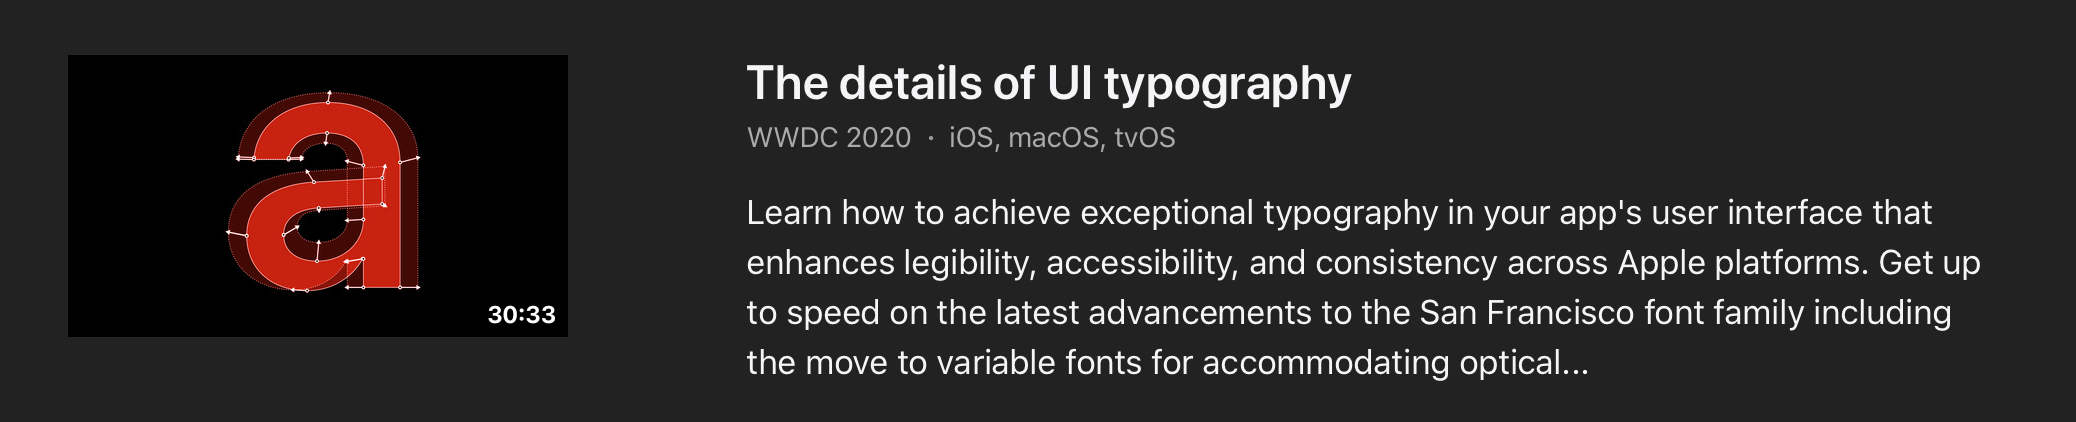 The details of UI typography.png